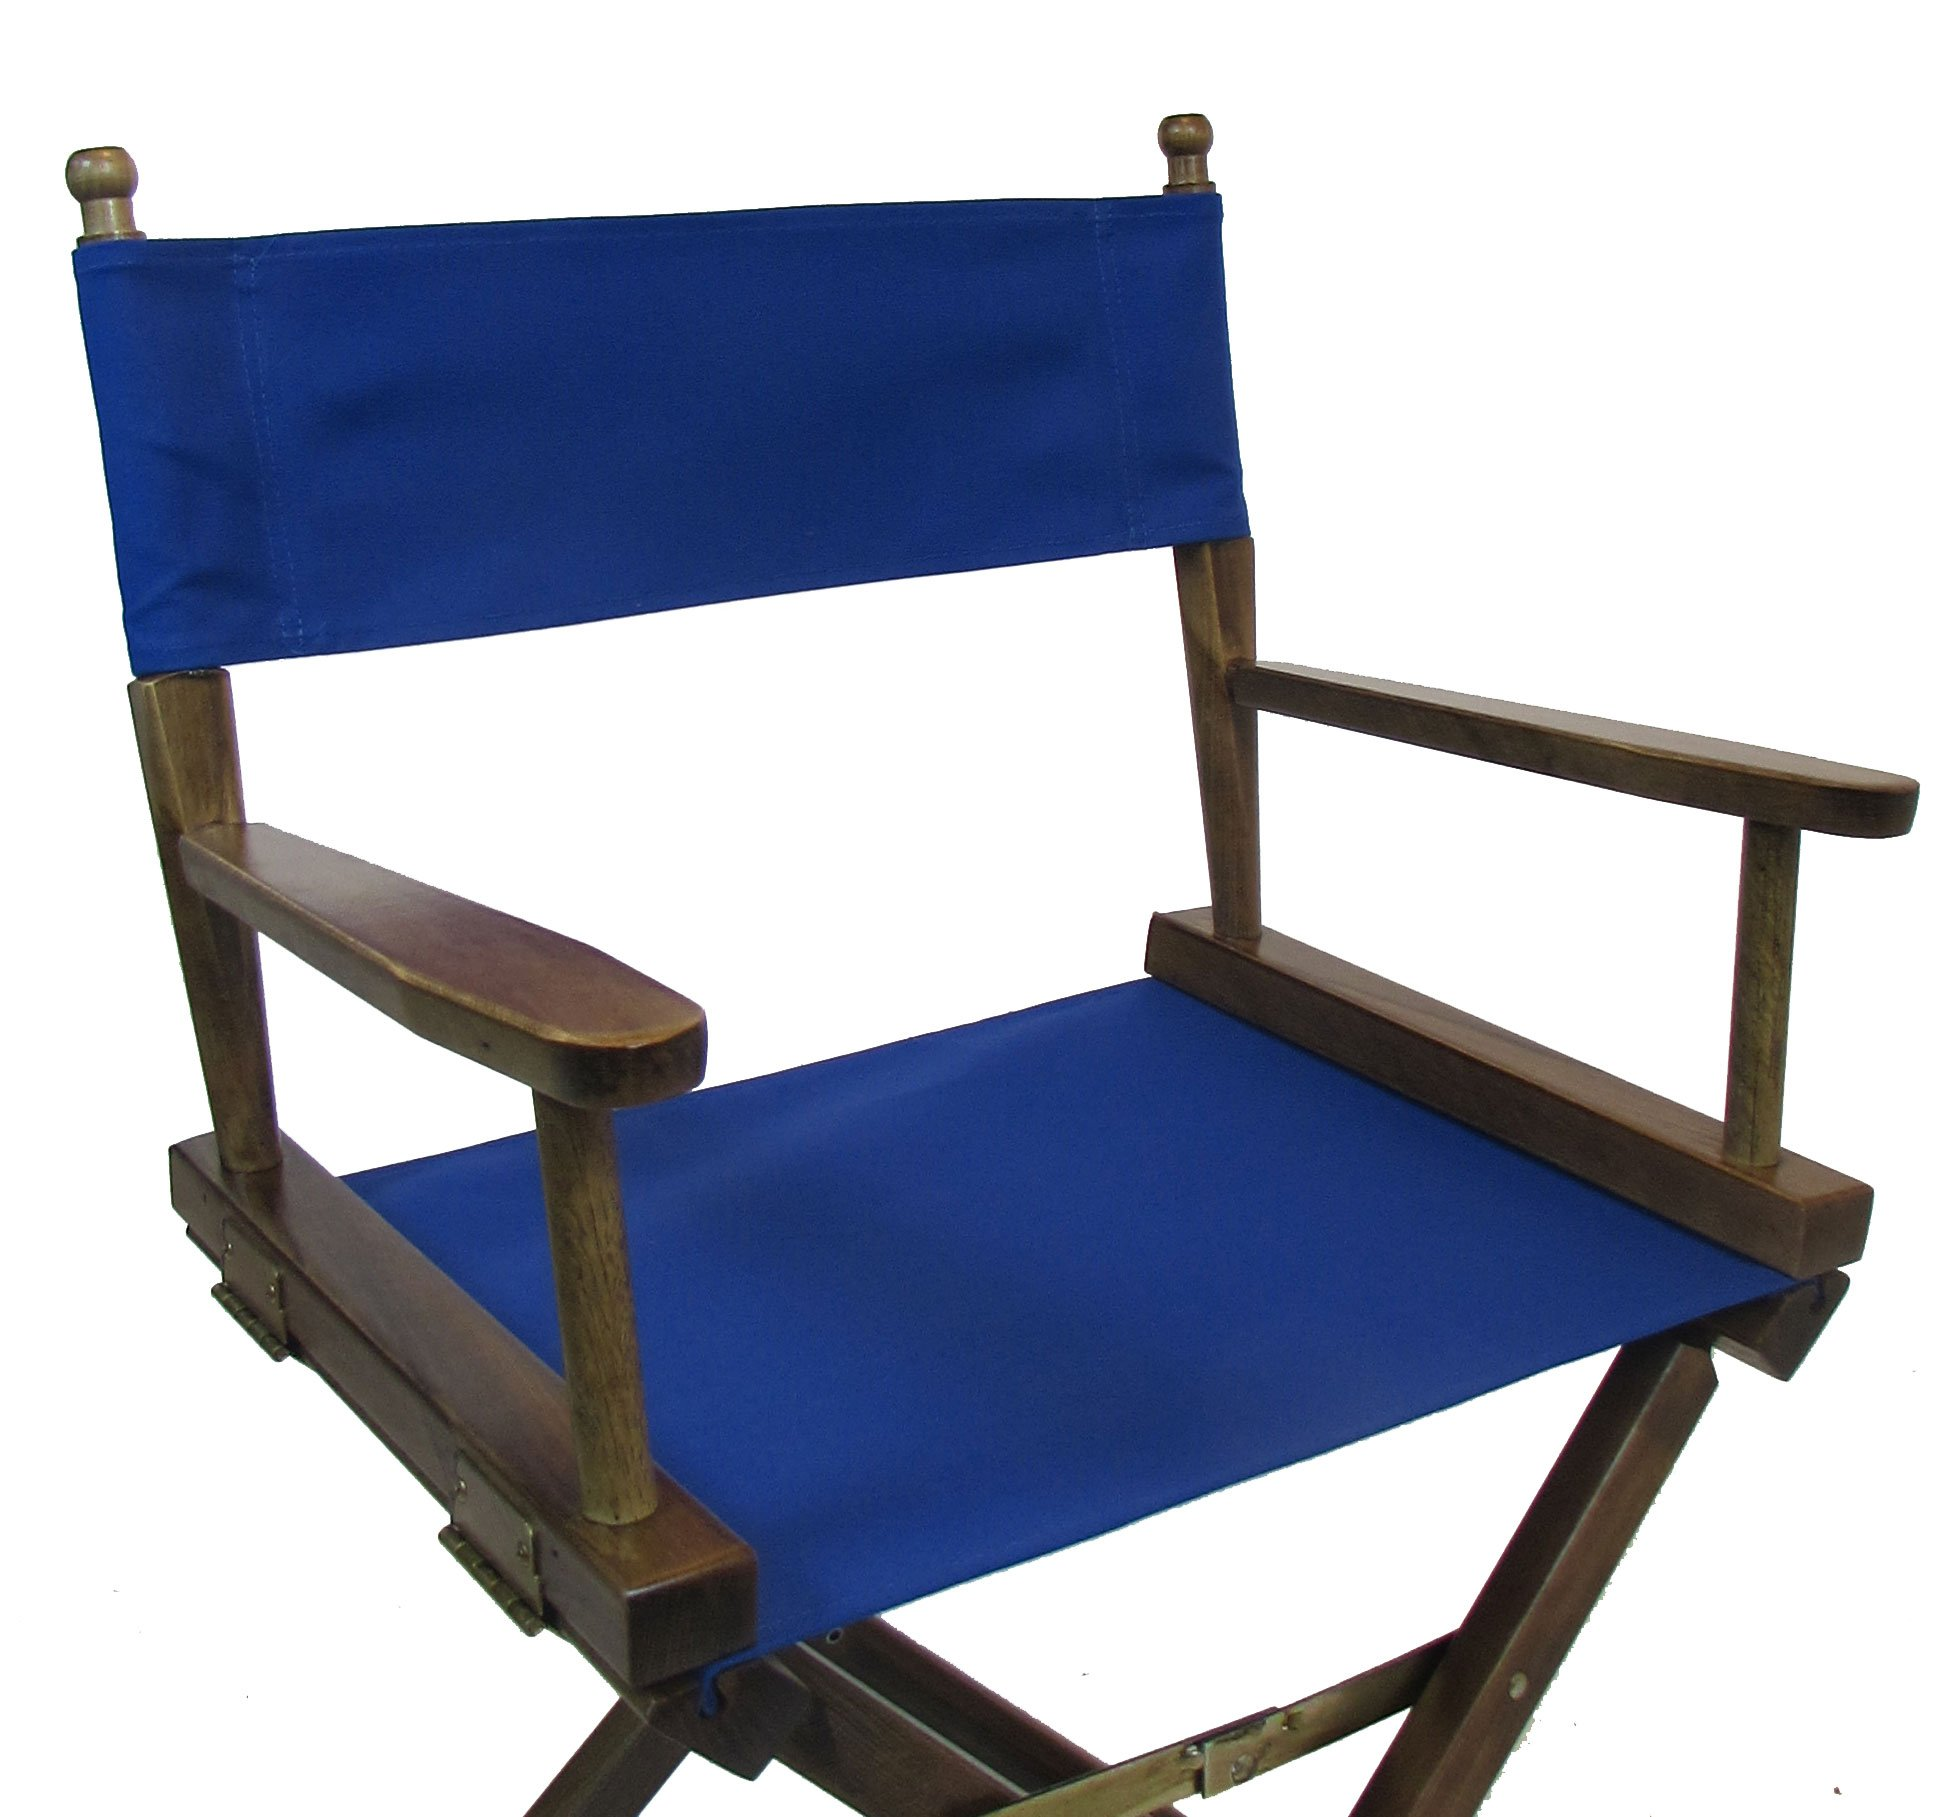 PERSONALIZED IMPRINTED Gold Medal Contemporary 30'' Bar Height Walnut Frame Directors Chair - Royal Blue by TLT